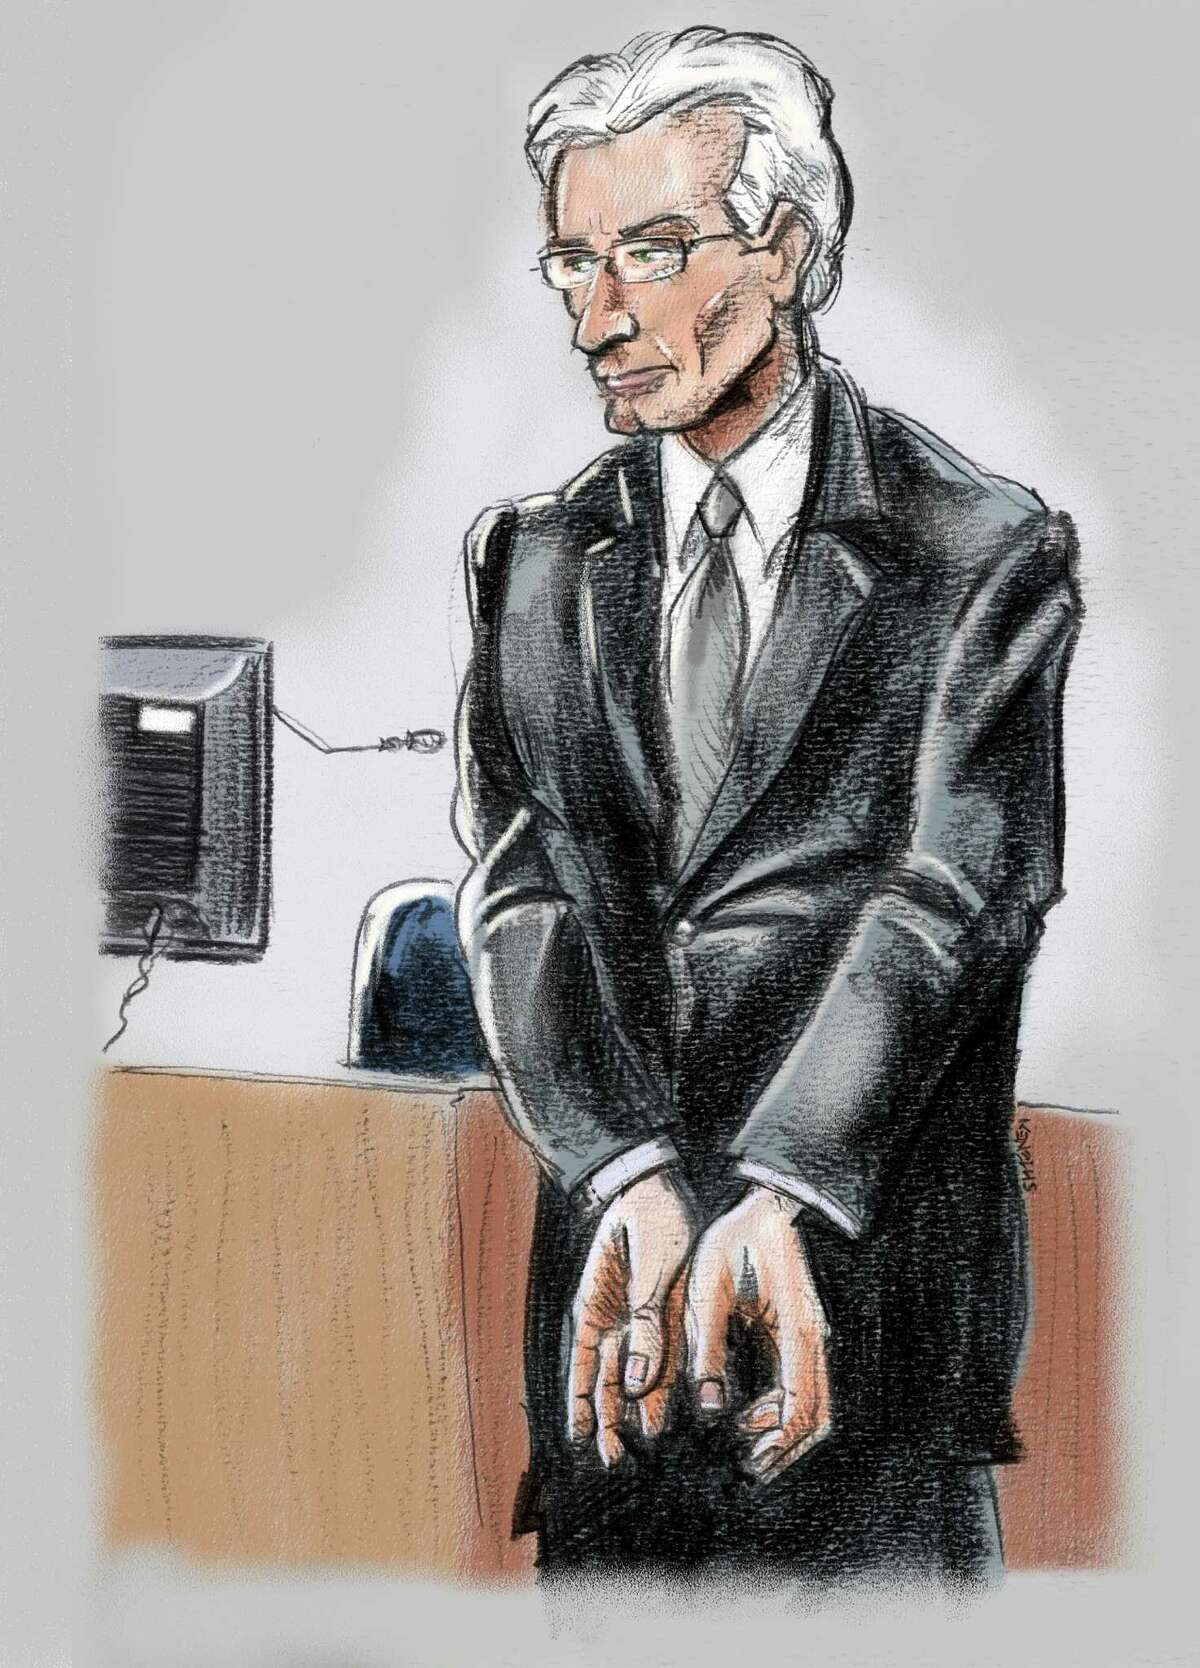 Former Stanford CFO James Davis, replicating for jurors the handcuffing motion he used to make to warn R. Allen Stanford that what they were doing was illegal Thursday, February. 2, 2012 in Houston, Texas. Davis, who pled guilty for his part in a $7 billion Ponzi scheme headed by Stanford, testified against the flamboyant Texas tycoon during Stanford?'s fraud trial in Houston on Thursday. (Ken Ellis/Houston Chronicle)